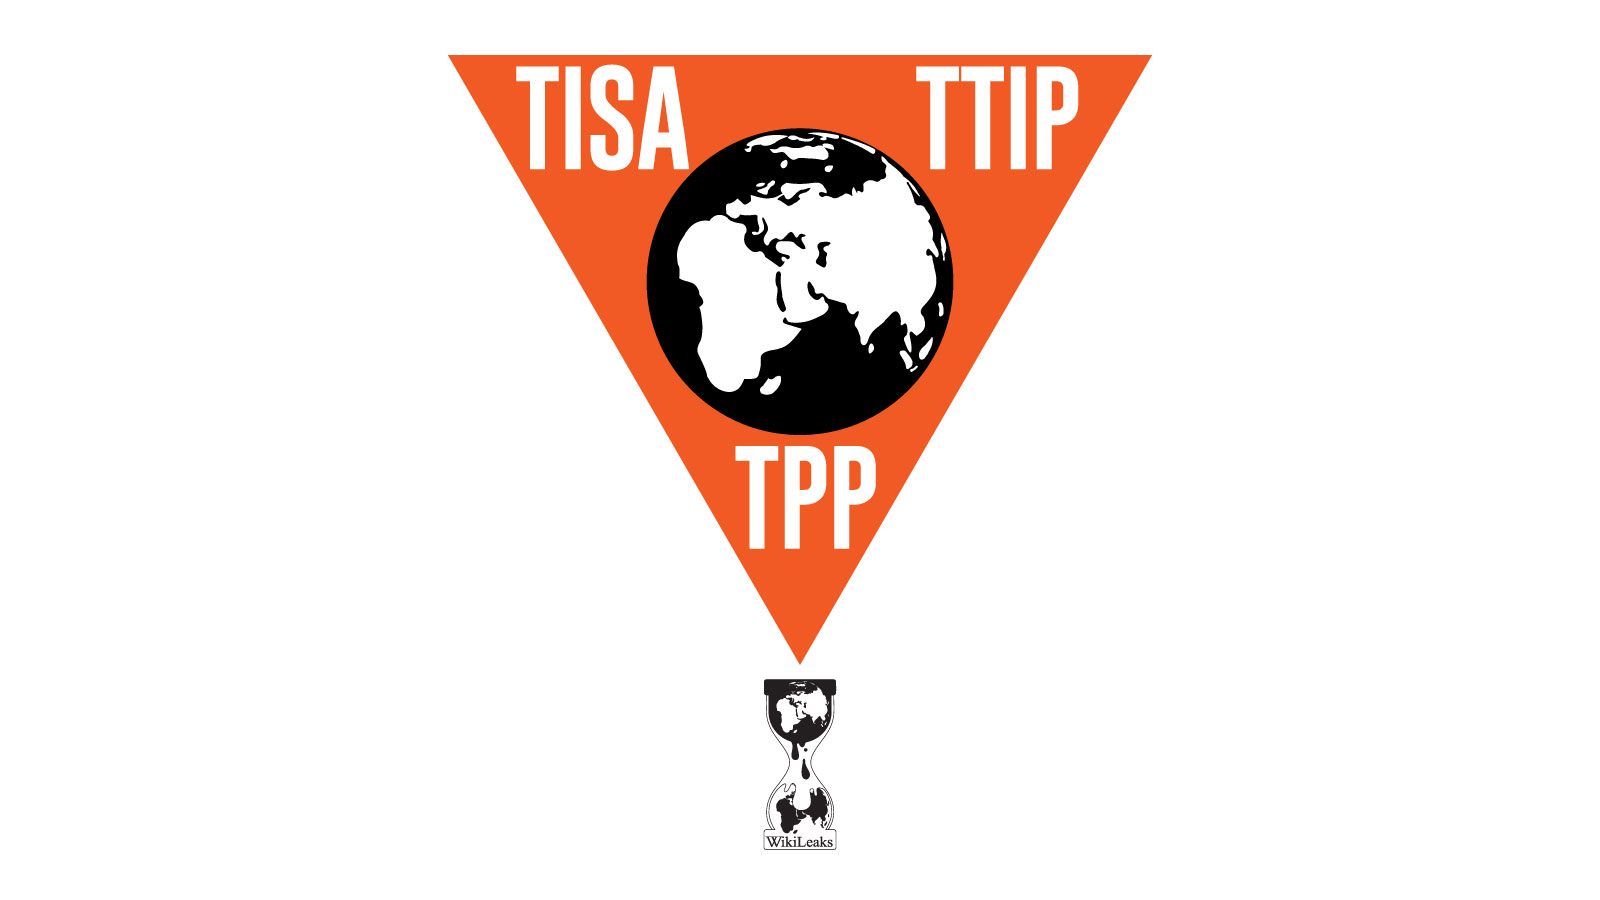 http://cont.ws/uploads/pic/2015/6/WikiLeaks-Global-Trade-Agreement-Triangulation.jpg